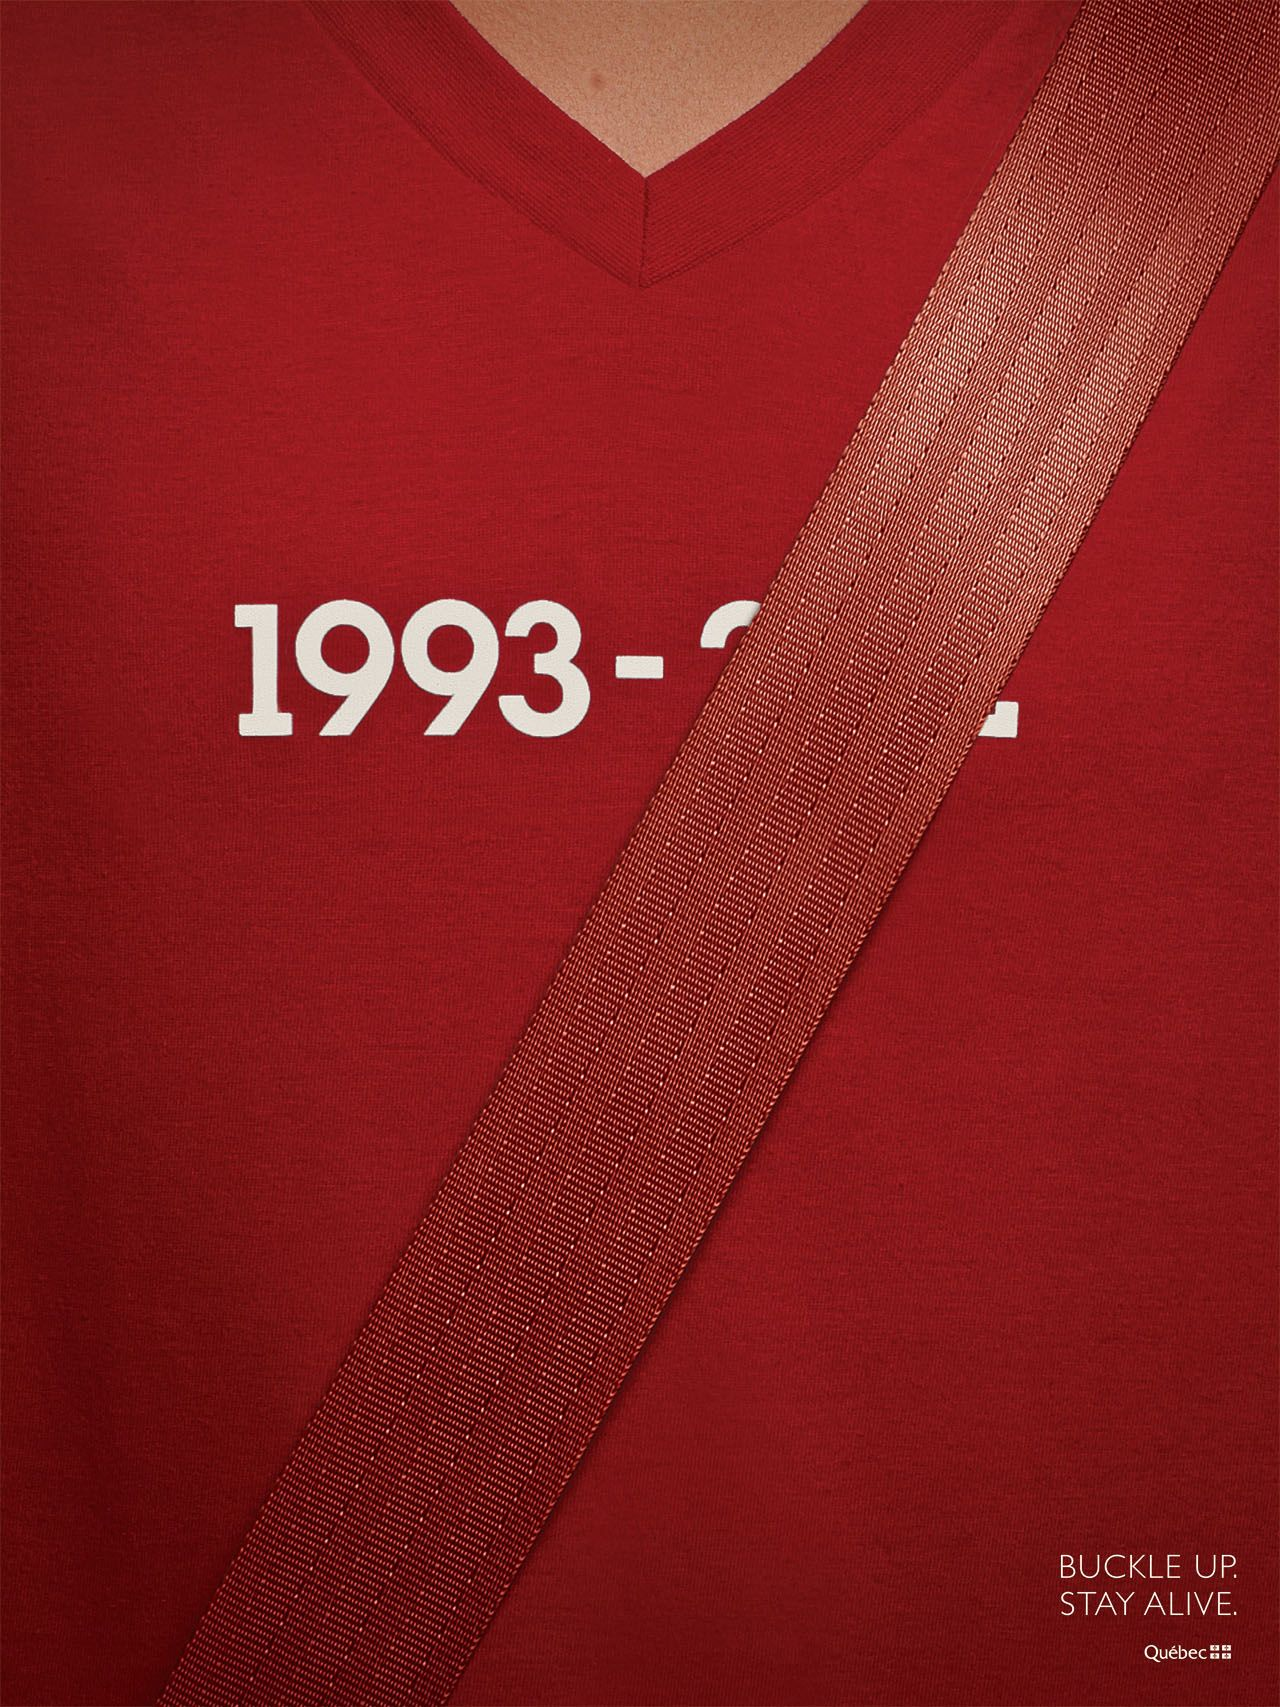 Quebec Automobile Insurance Society Seatbelts Buckle Up Stay